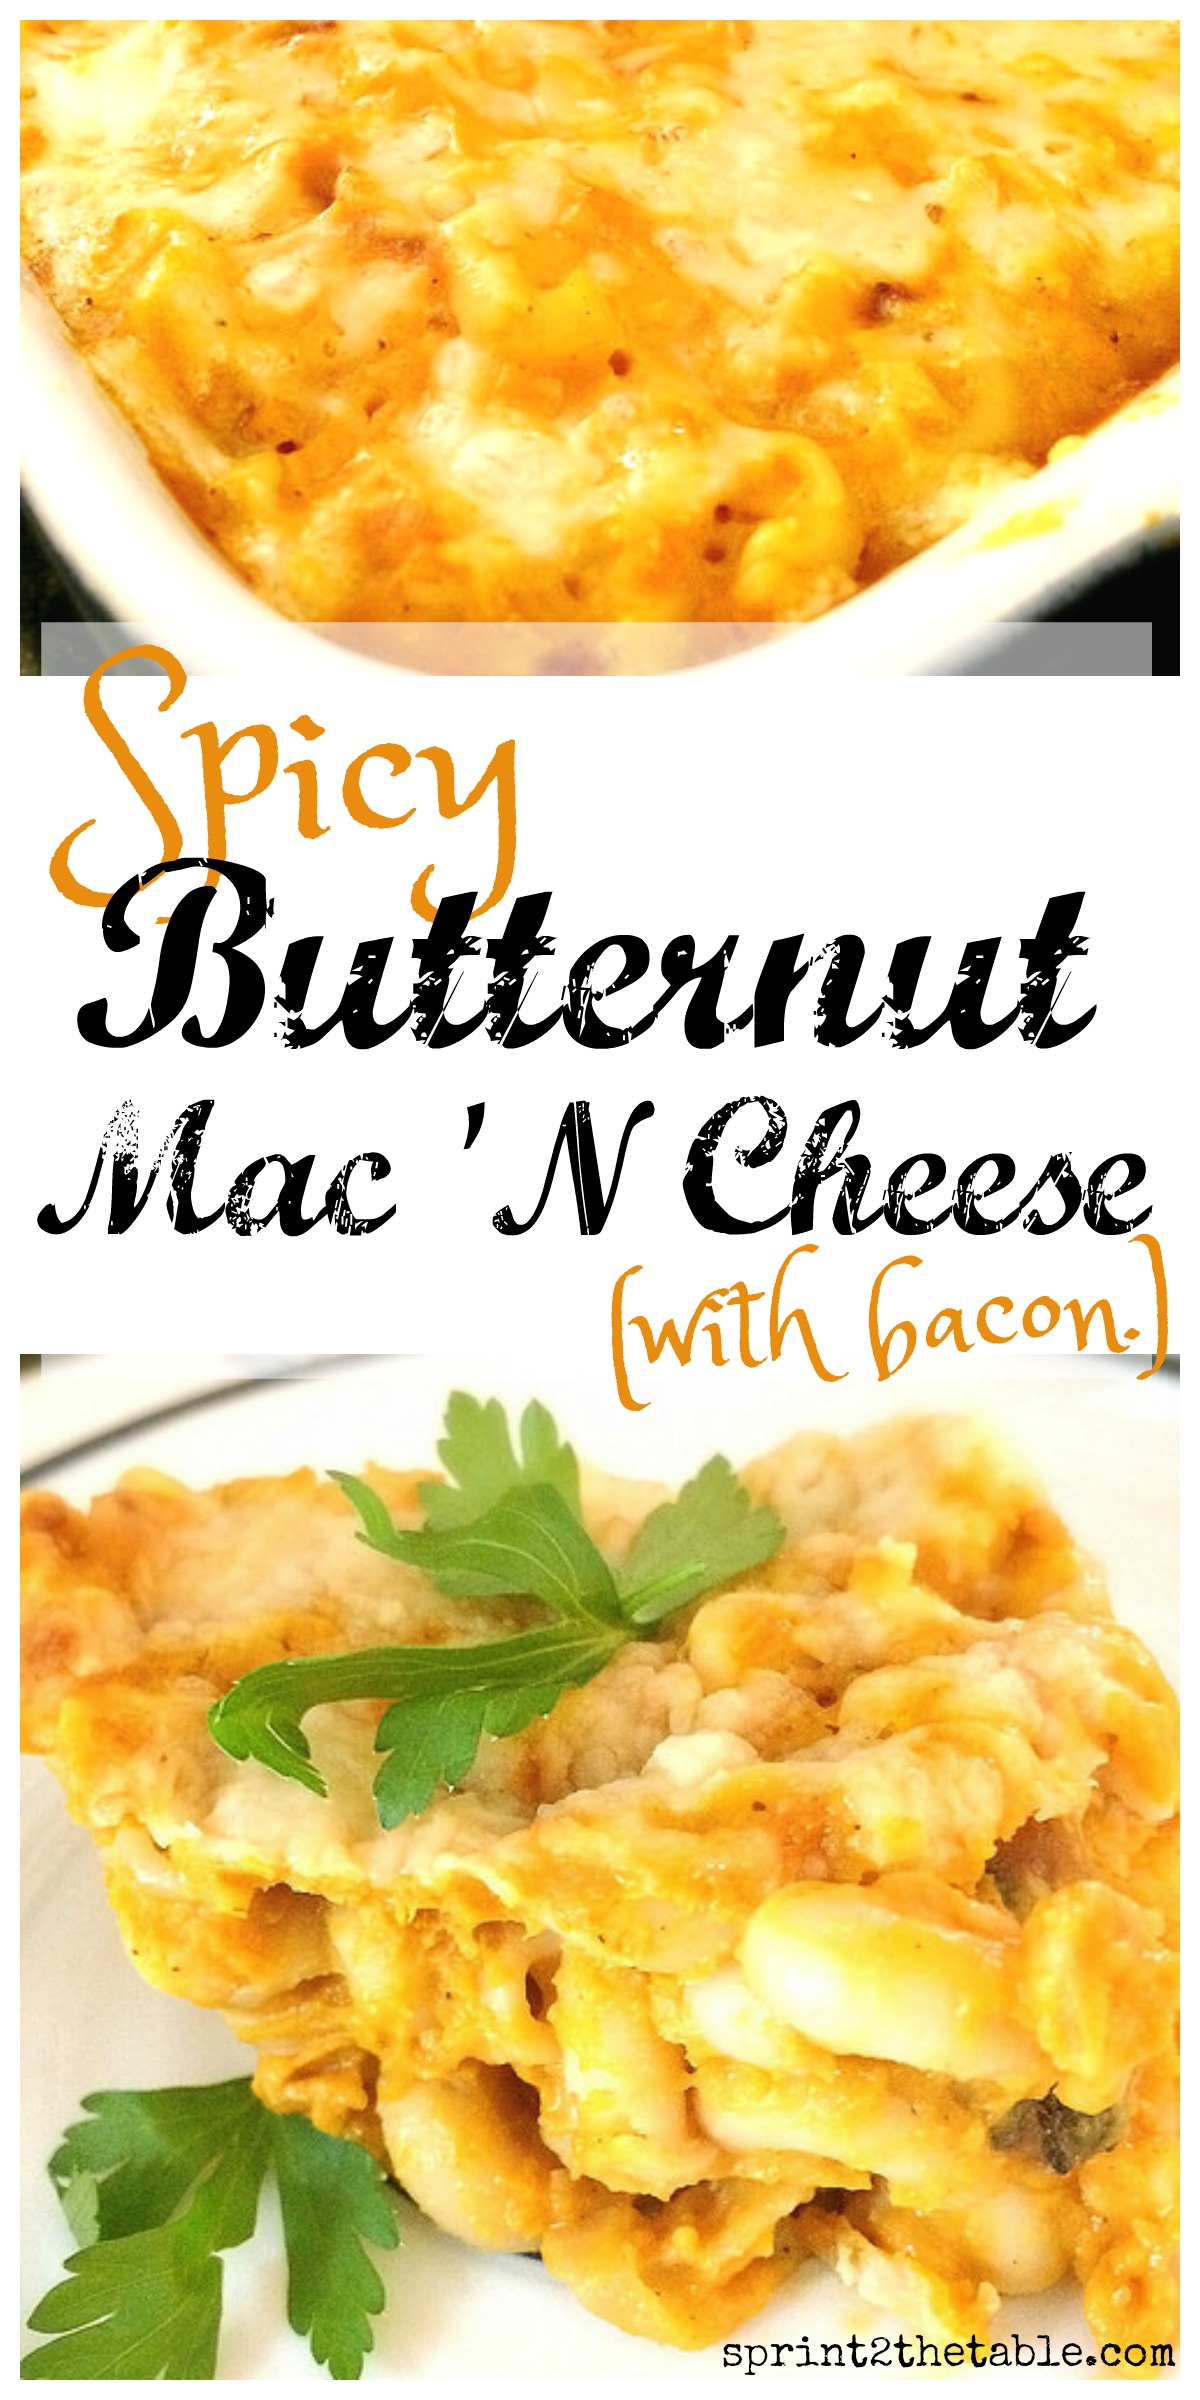 a-lightened-up-version-of-a-classic-spicy-butternut-mac-n-cheese